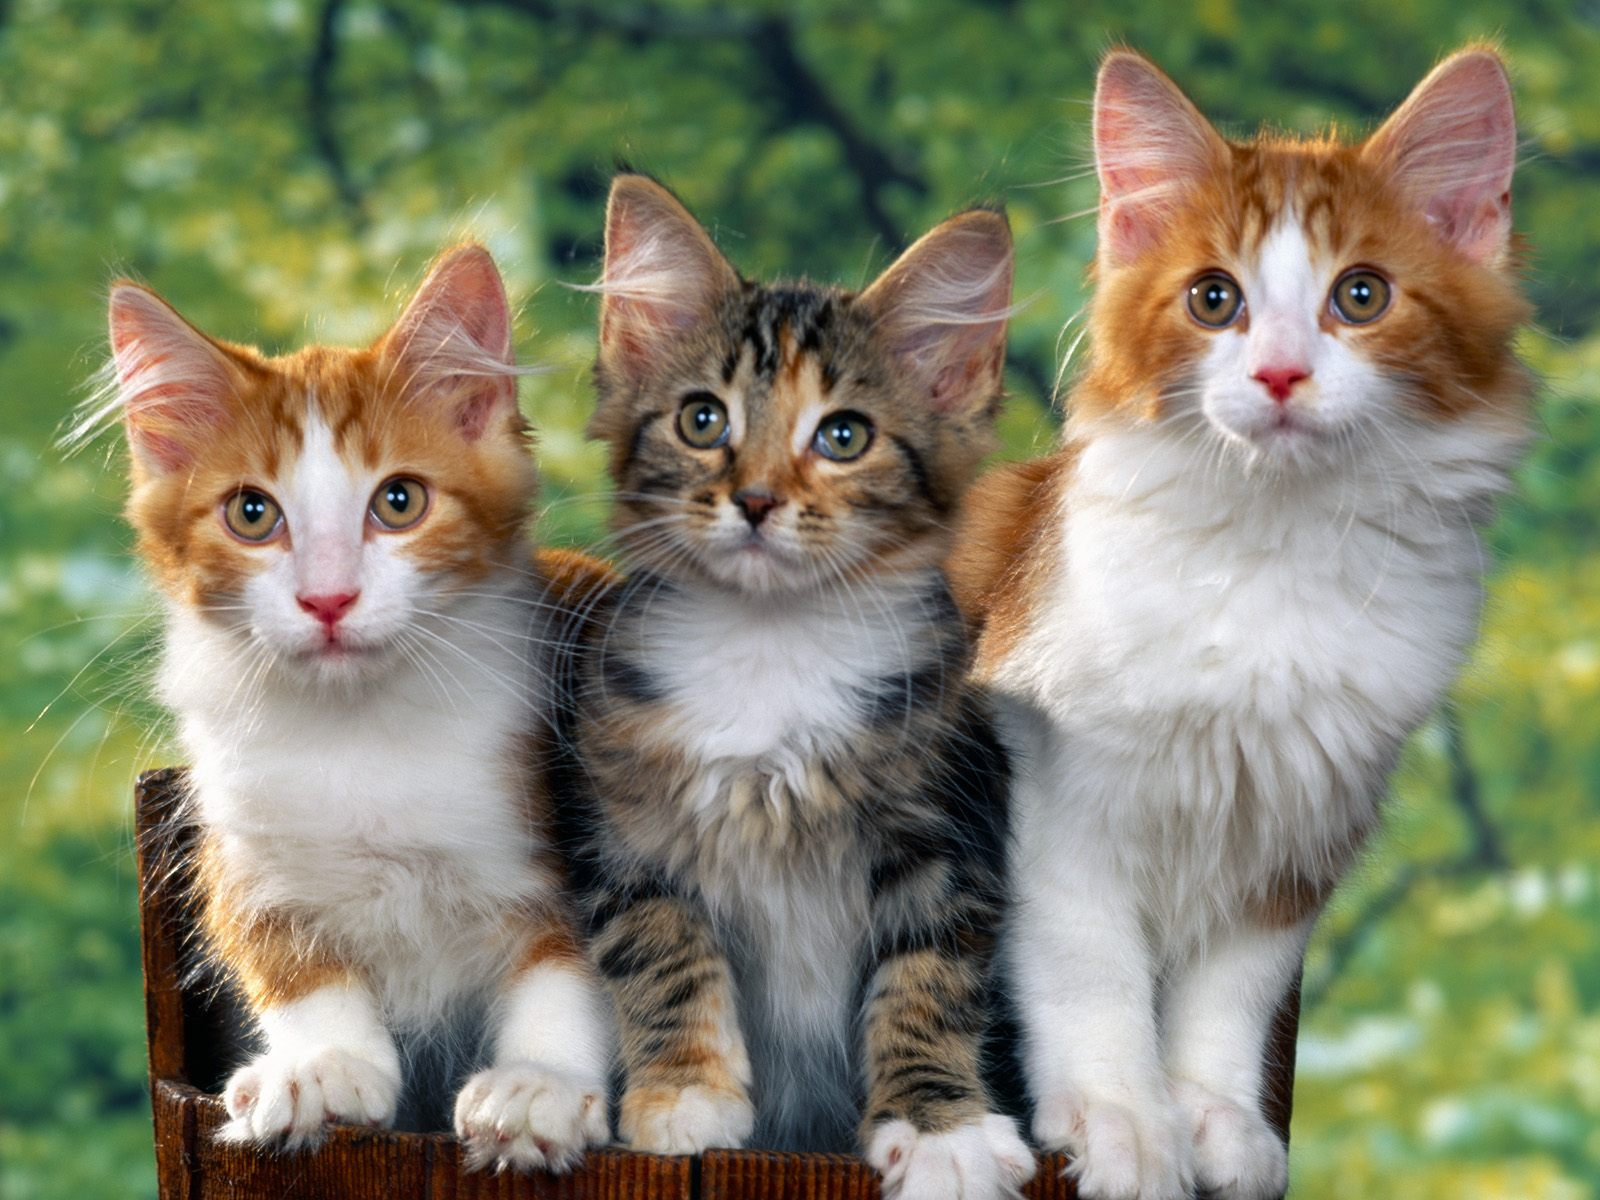 Cat Wallpaper Cute Dog And Funny Love Wall Papers Hd Wallpapers Puppies Backgrounds For Boys